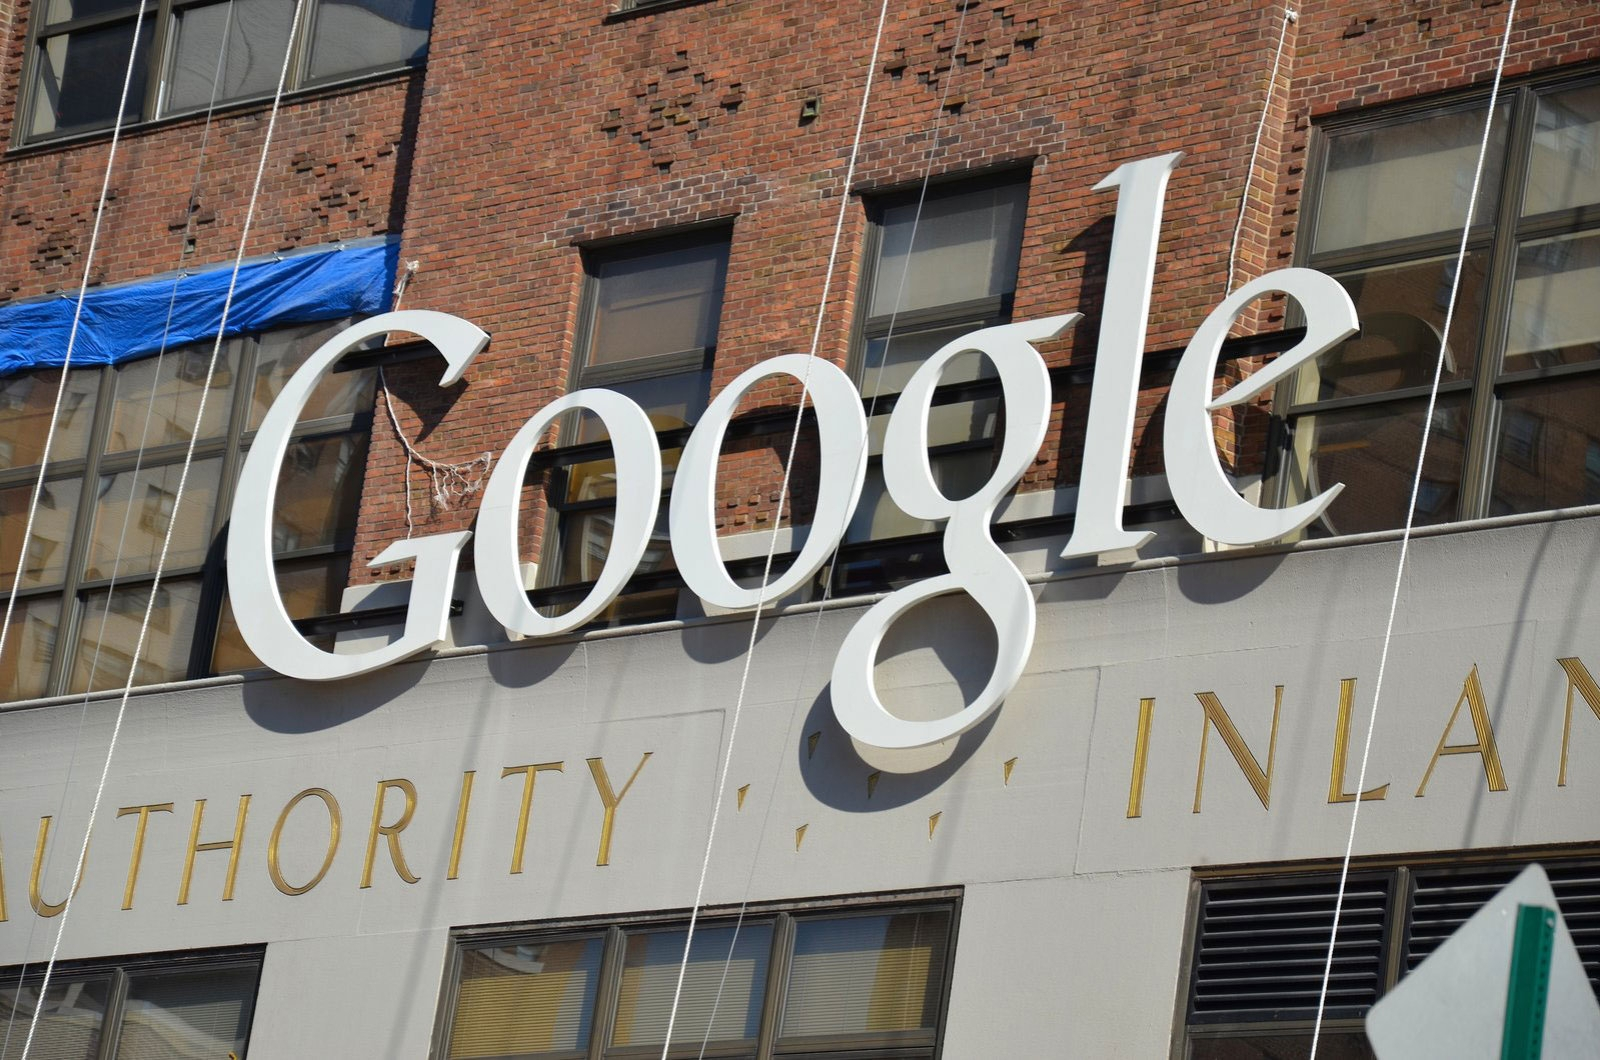 Google gives $4 million to pro-migrant causes